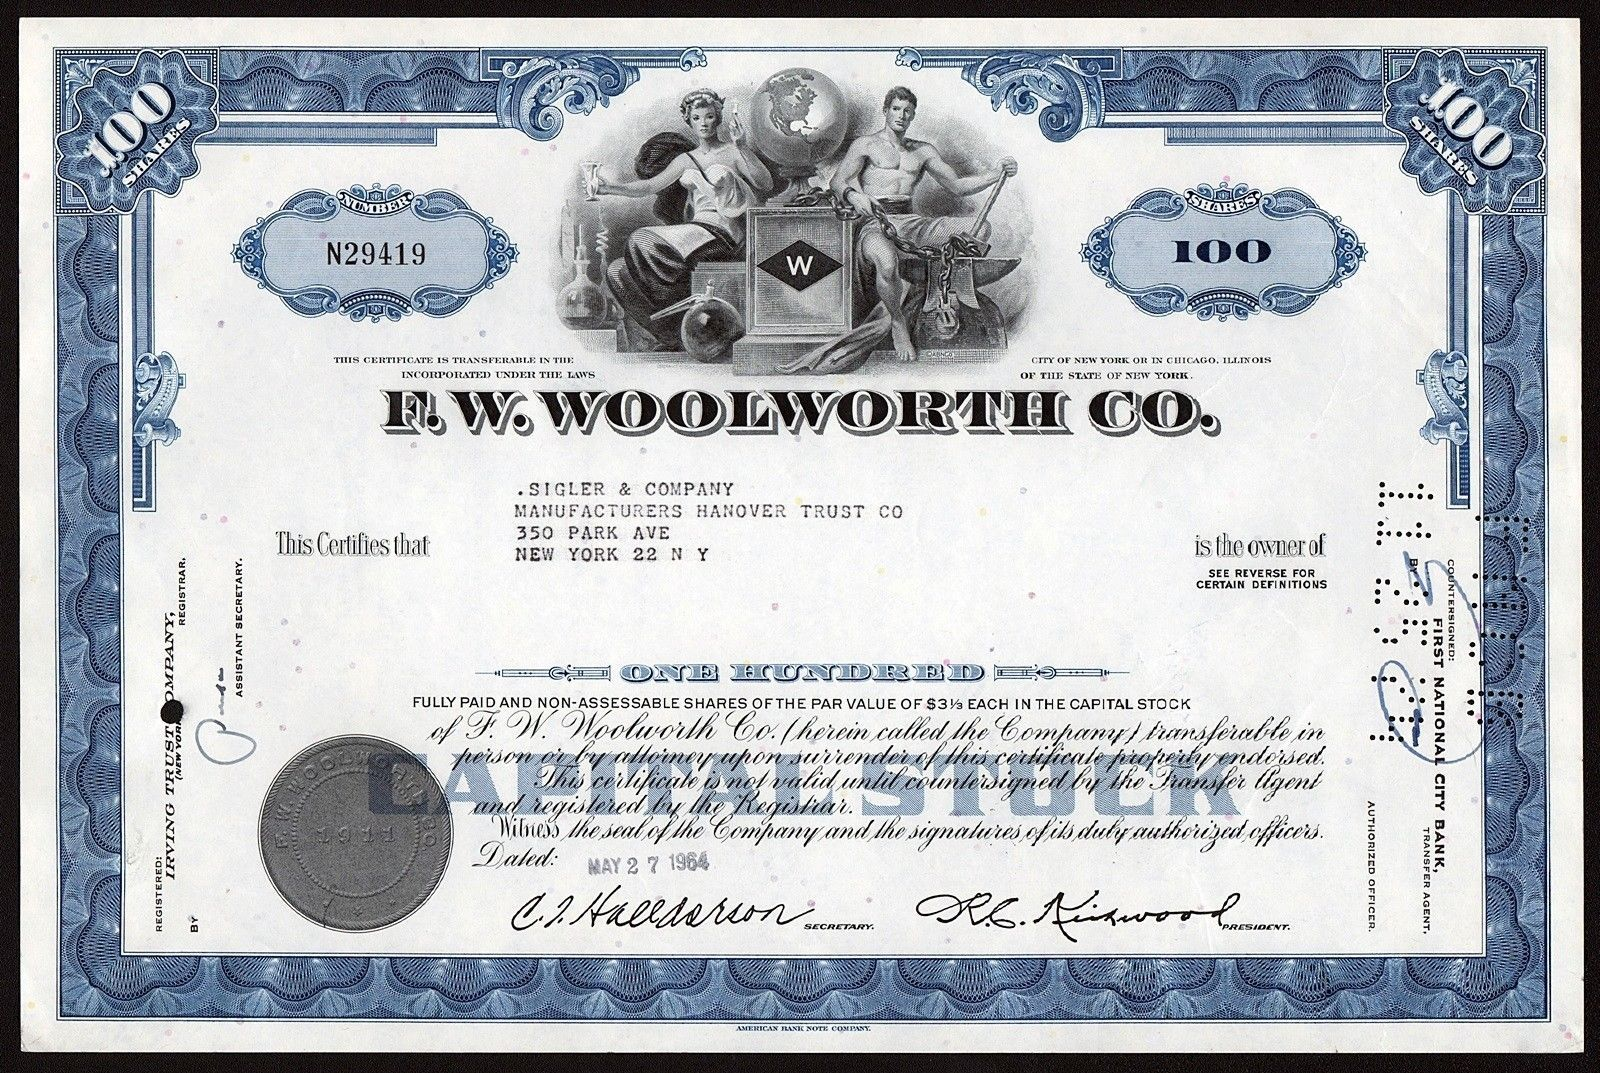 New York: F.W. Woolworth Co. - 100 shares